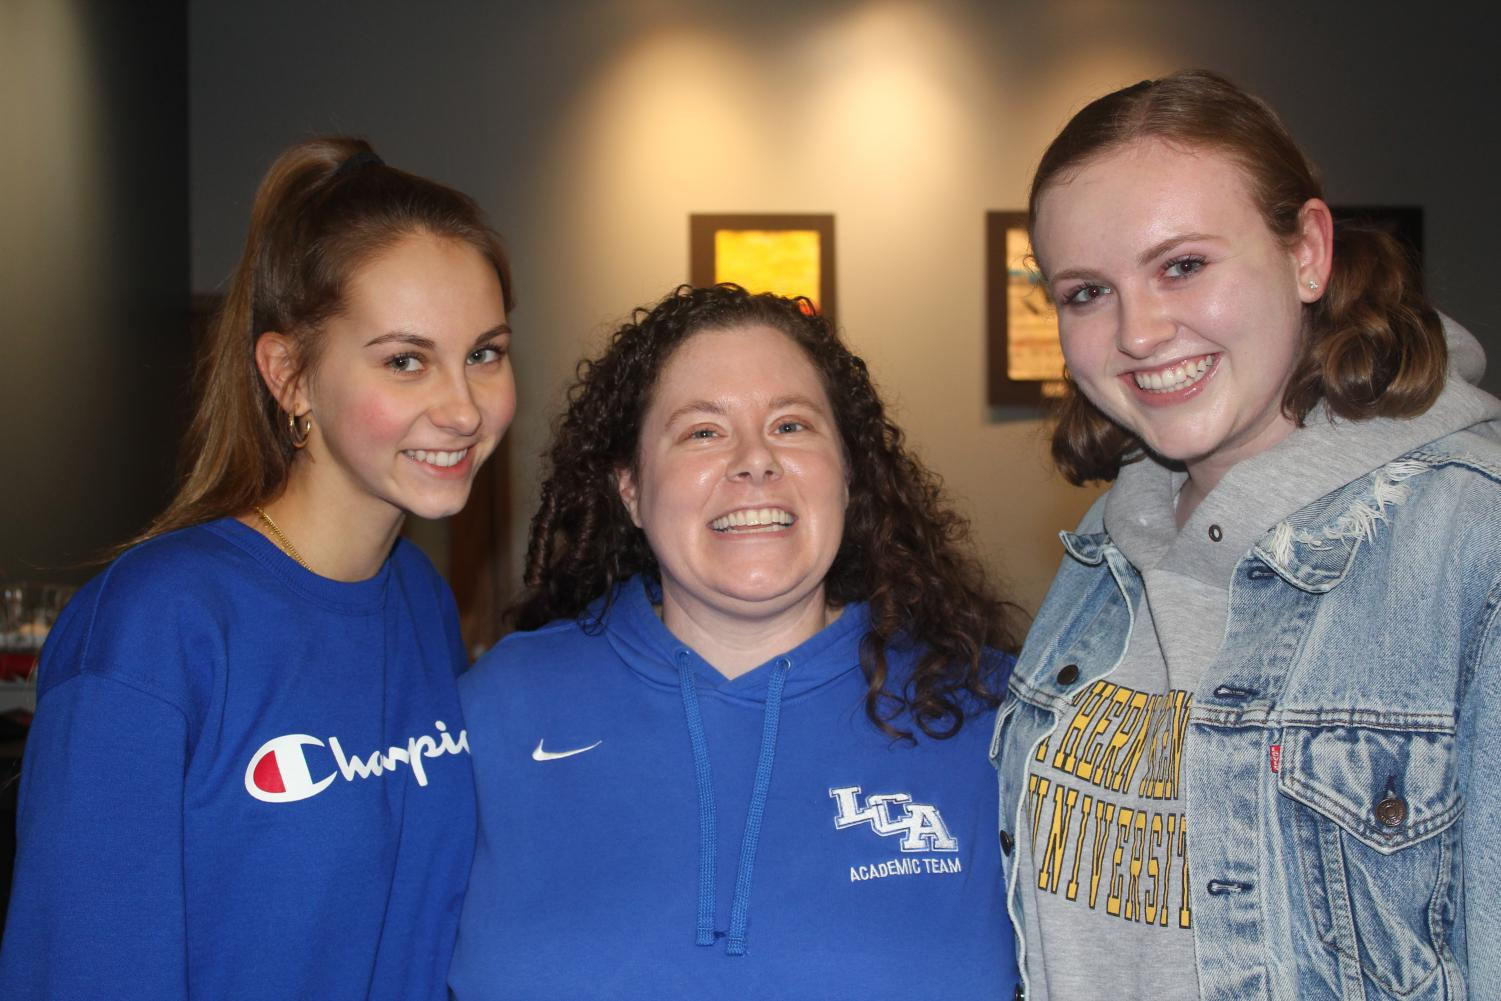 Erin Oliver, 12, and Hope Marcum, 12, pose with Ms. Groves who has developed a special relationship with many students during her tenure at LCA.